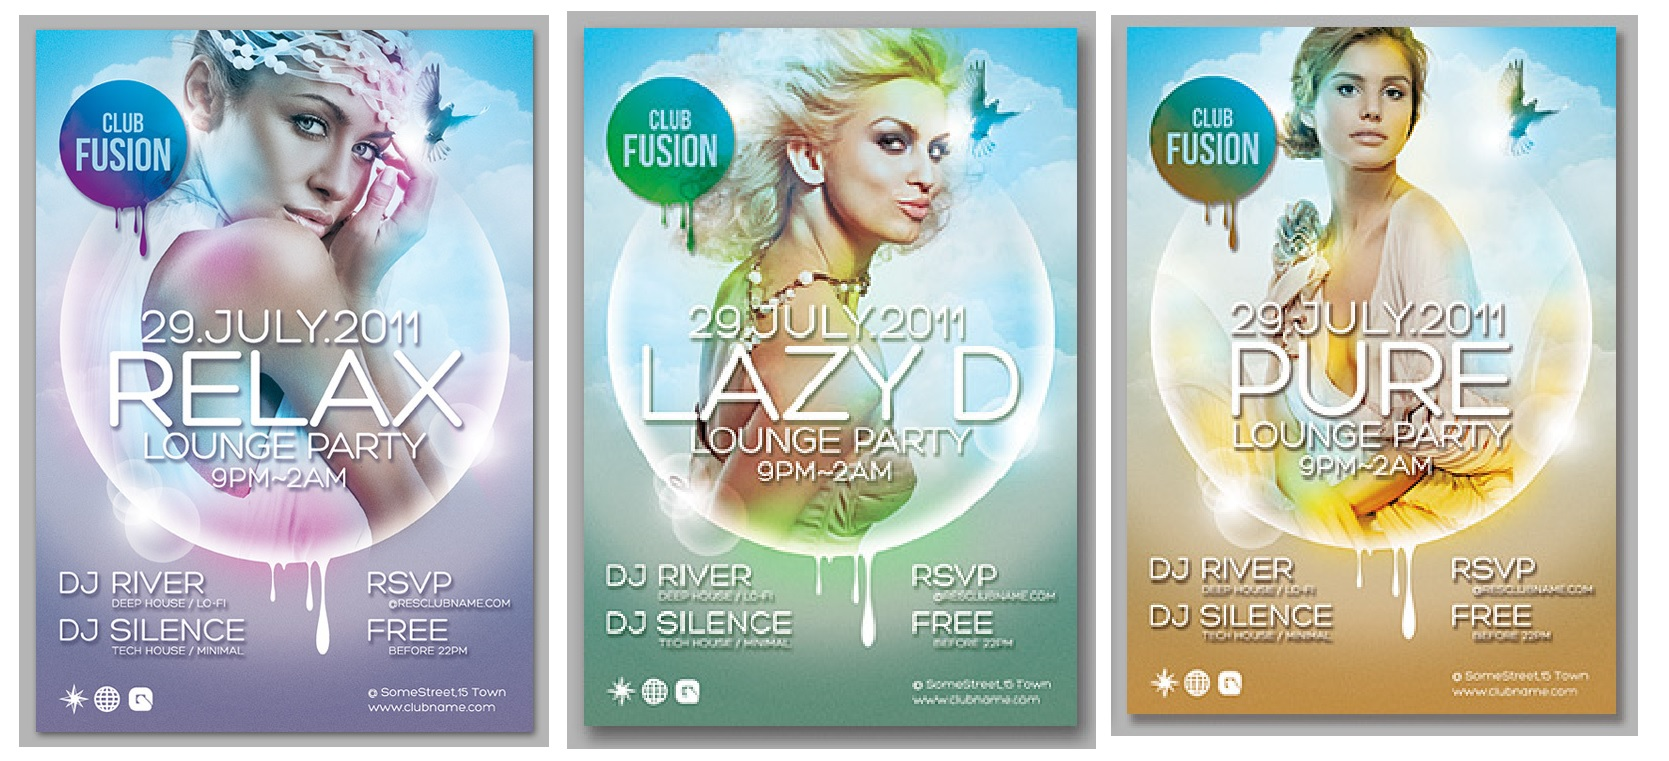 13 Poster Music Photoshop PSD Images - Photoshop PSD ...